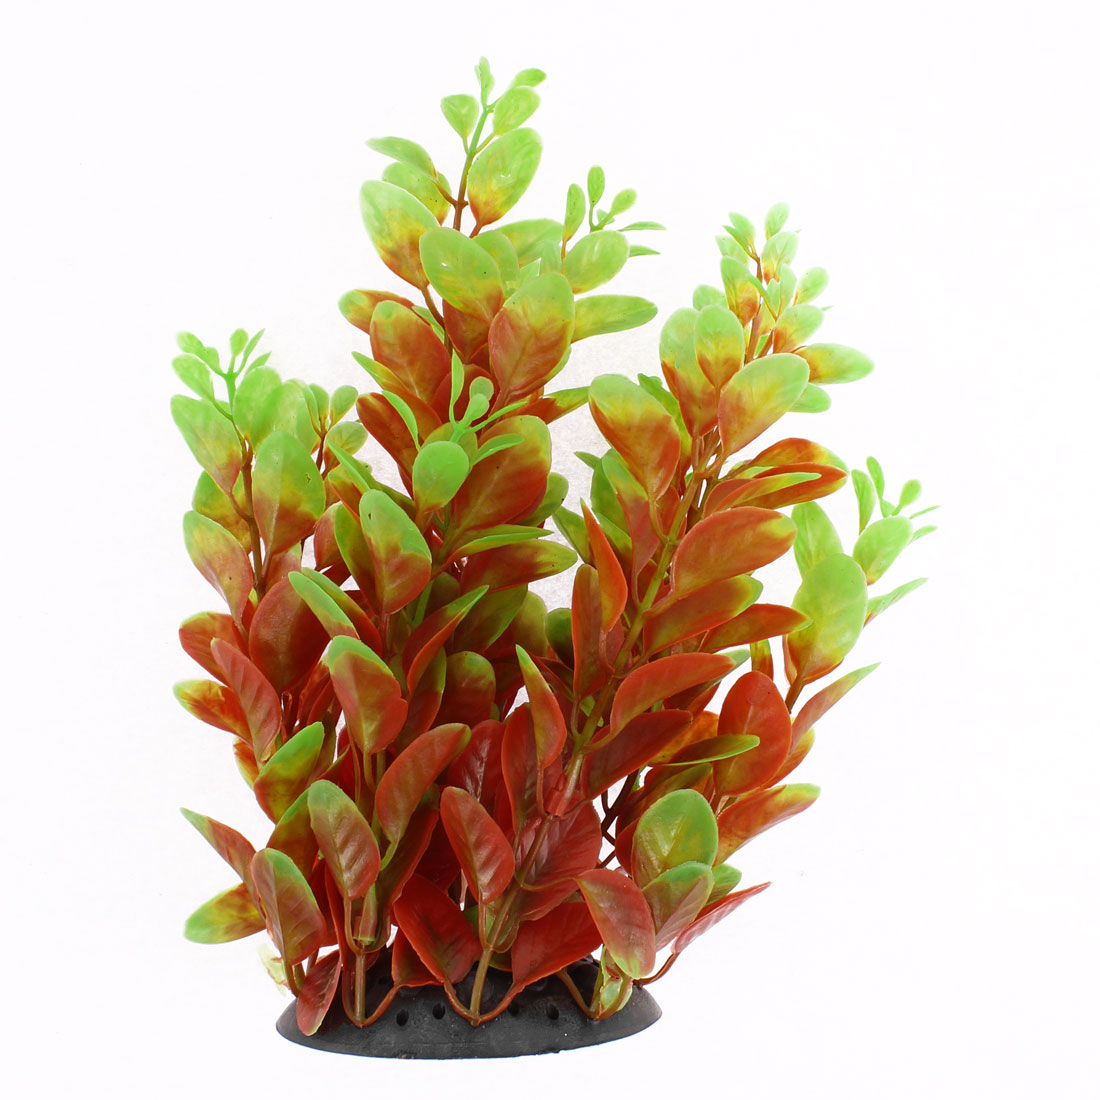 Aquarium Ceramic Base Plastic Water Plant Grass Decoration 18cm Height